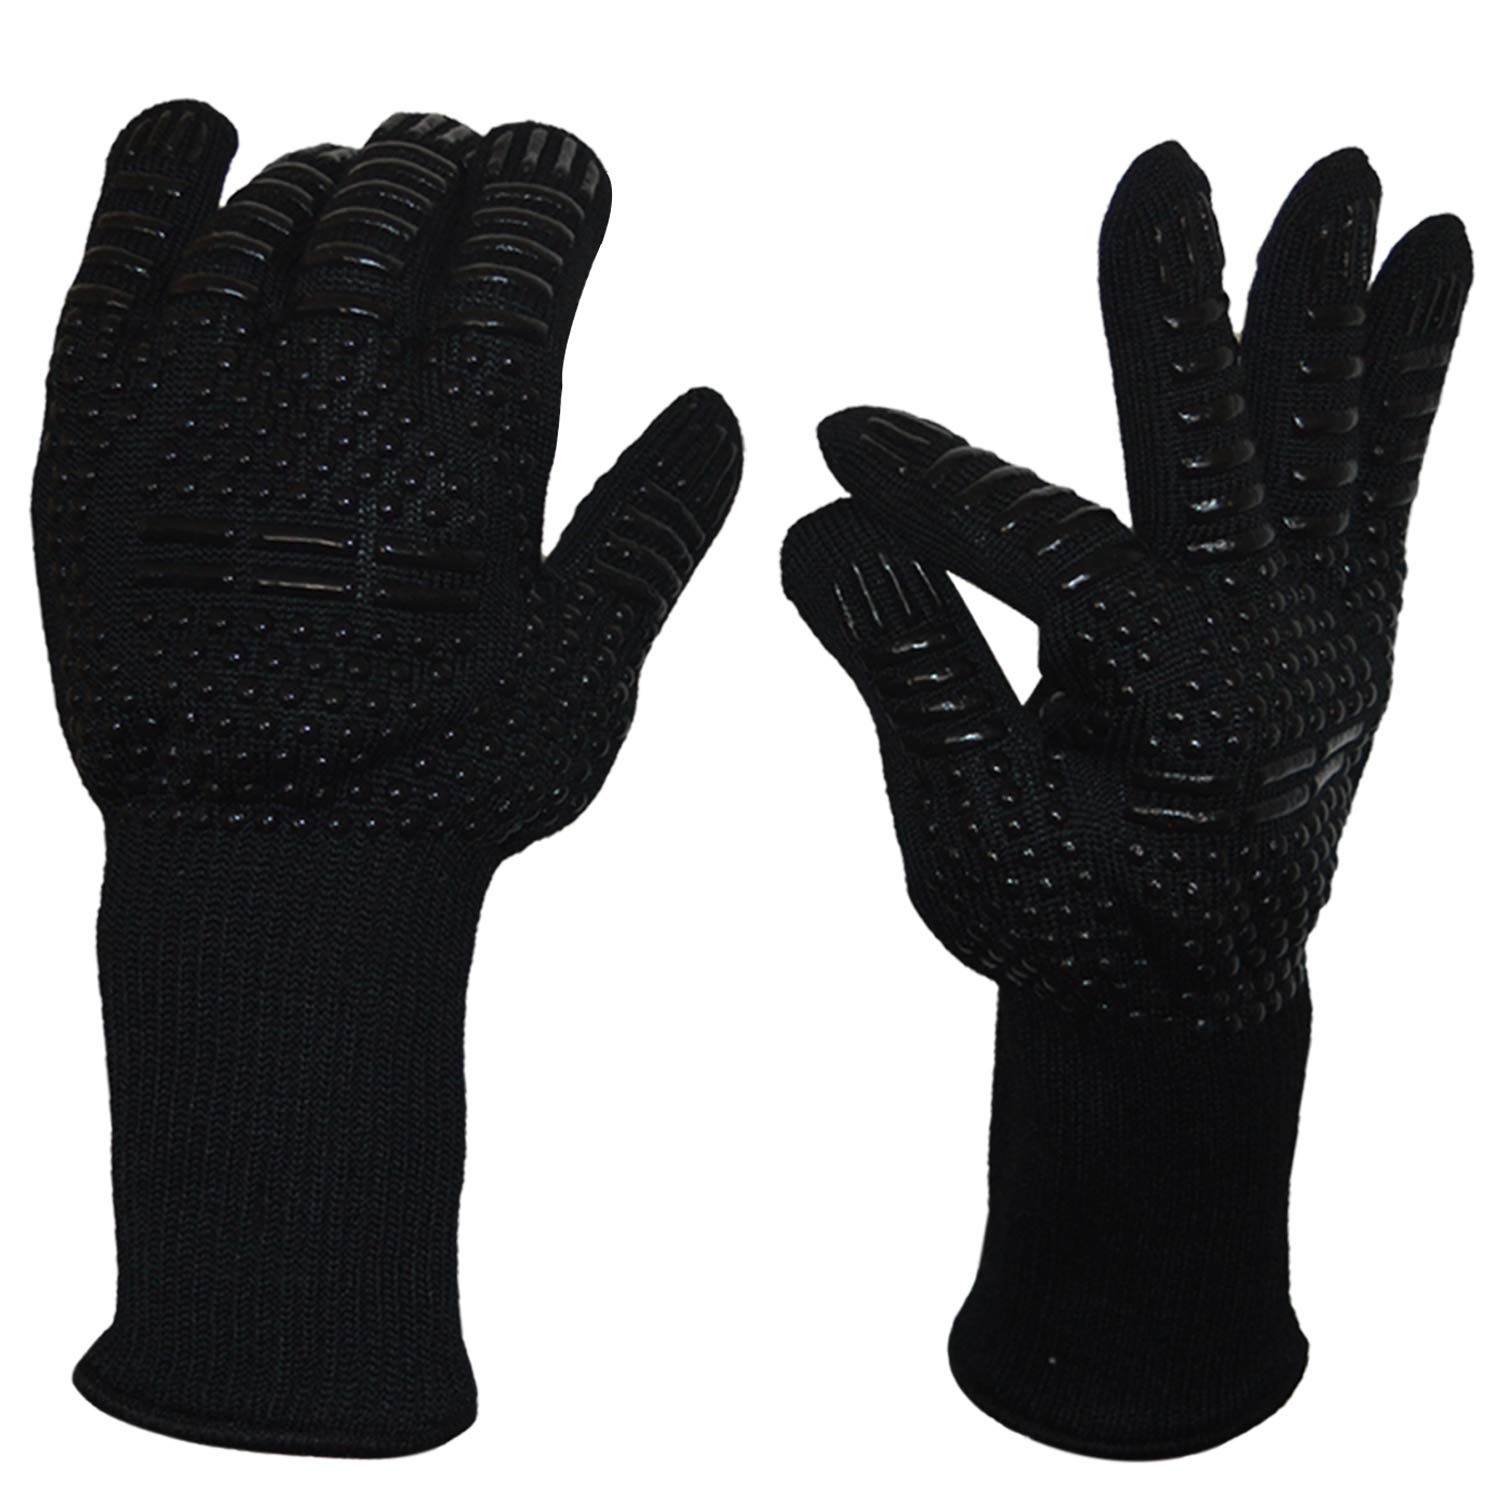 932/°F Extreme Heat Resistant Oven Mitts Cooking Grilling BBQ 1 pair Baking Silicone Non-slip Kitchen Cooking Gloves for Barbecue Senders BBQ Grill Gloves